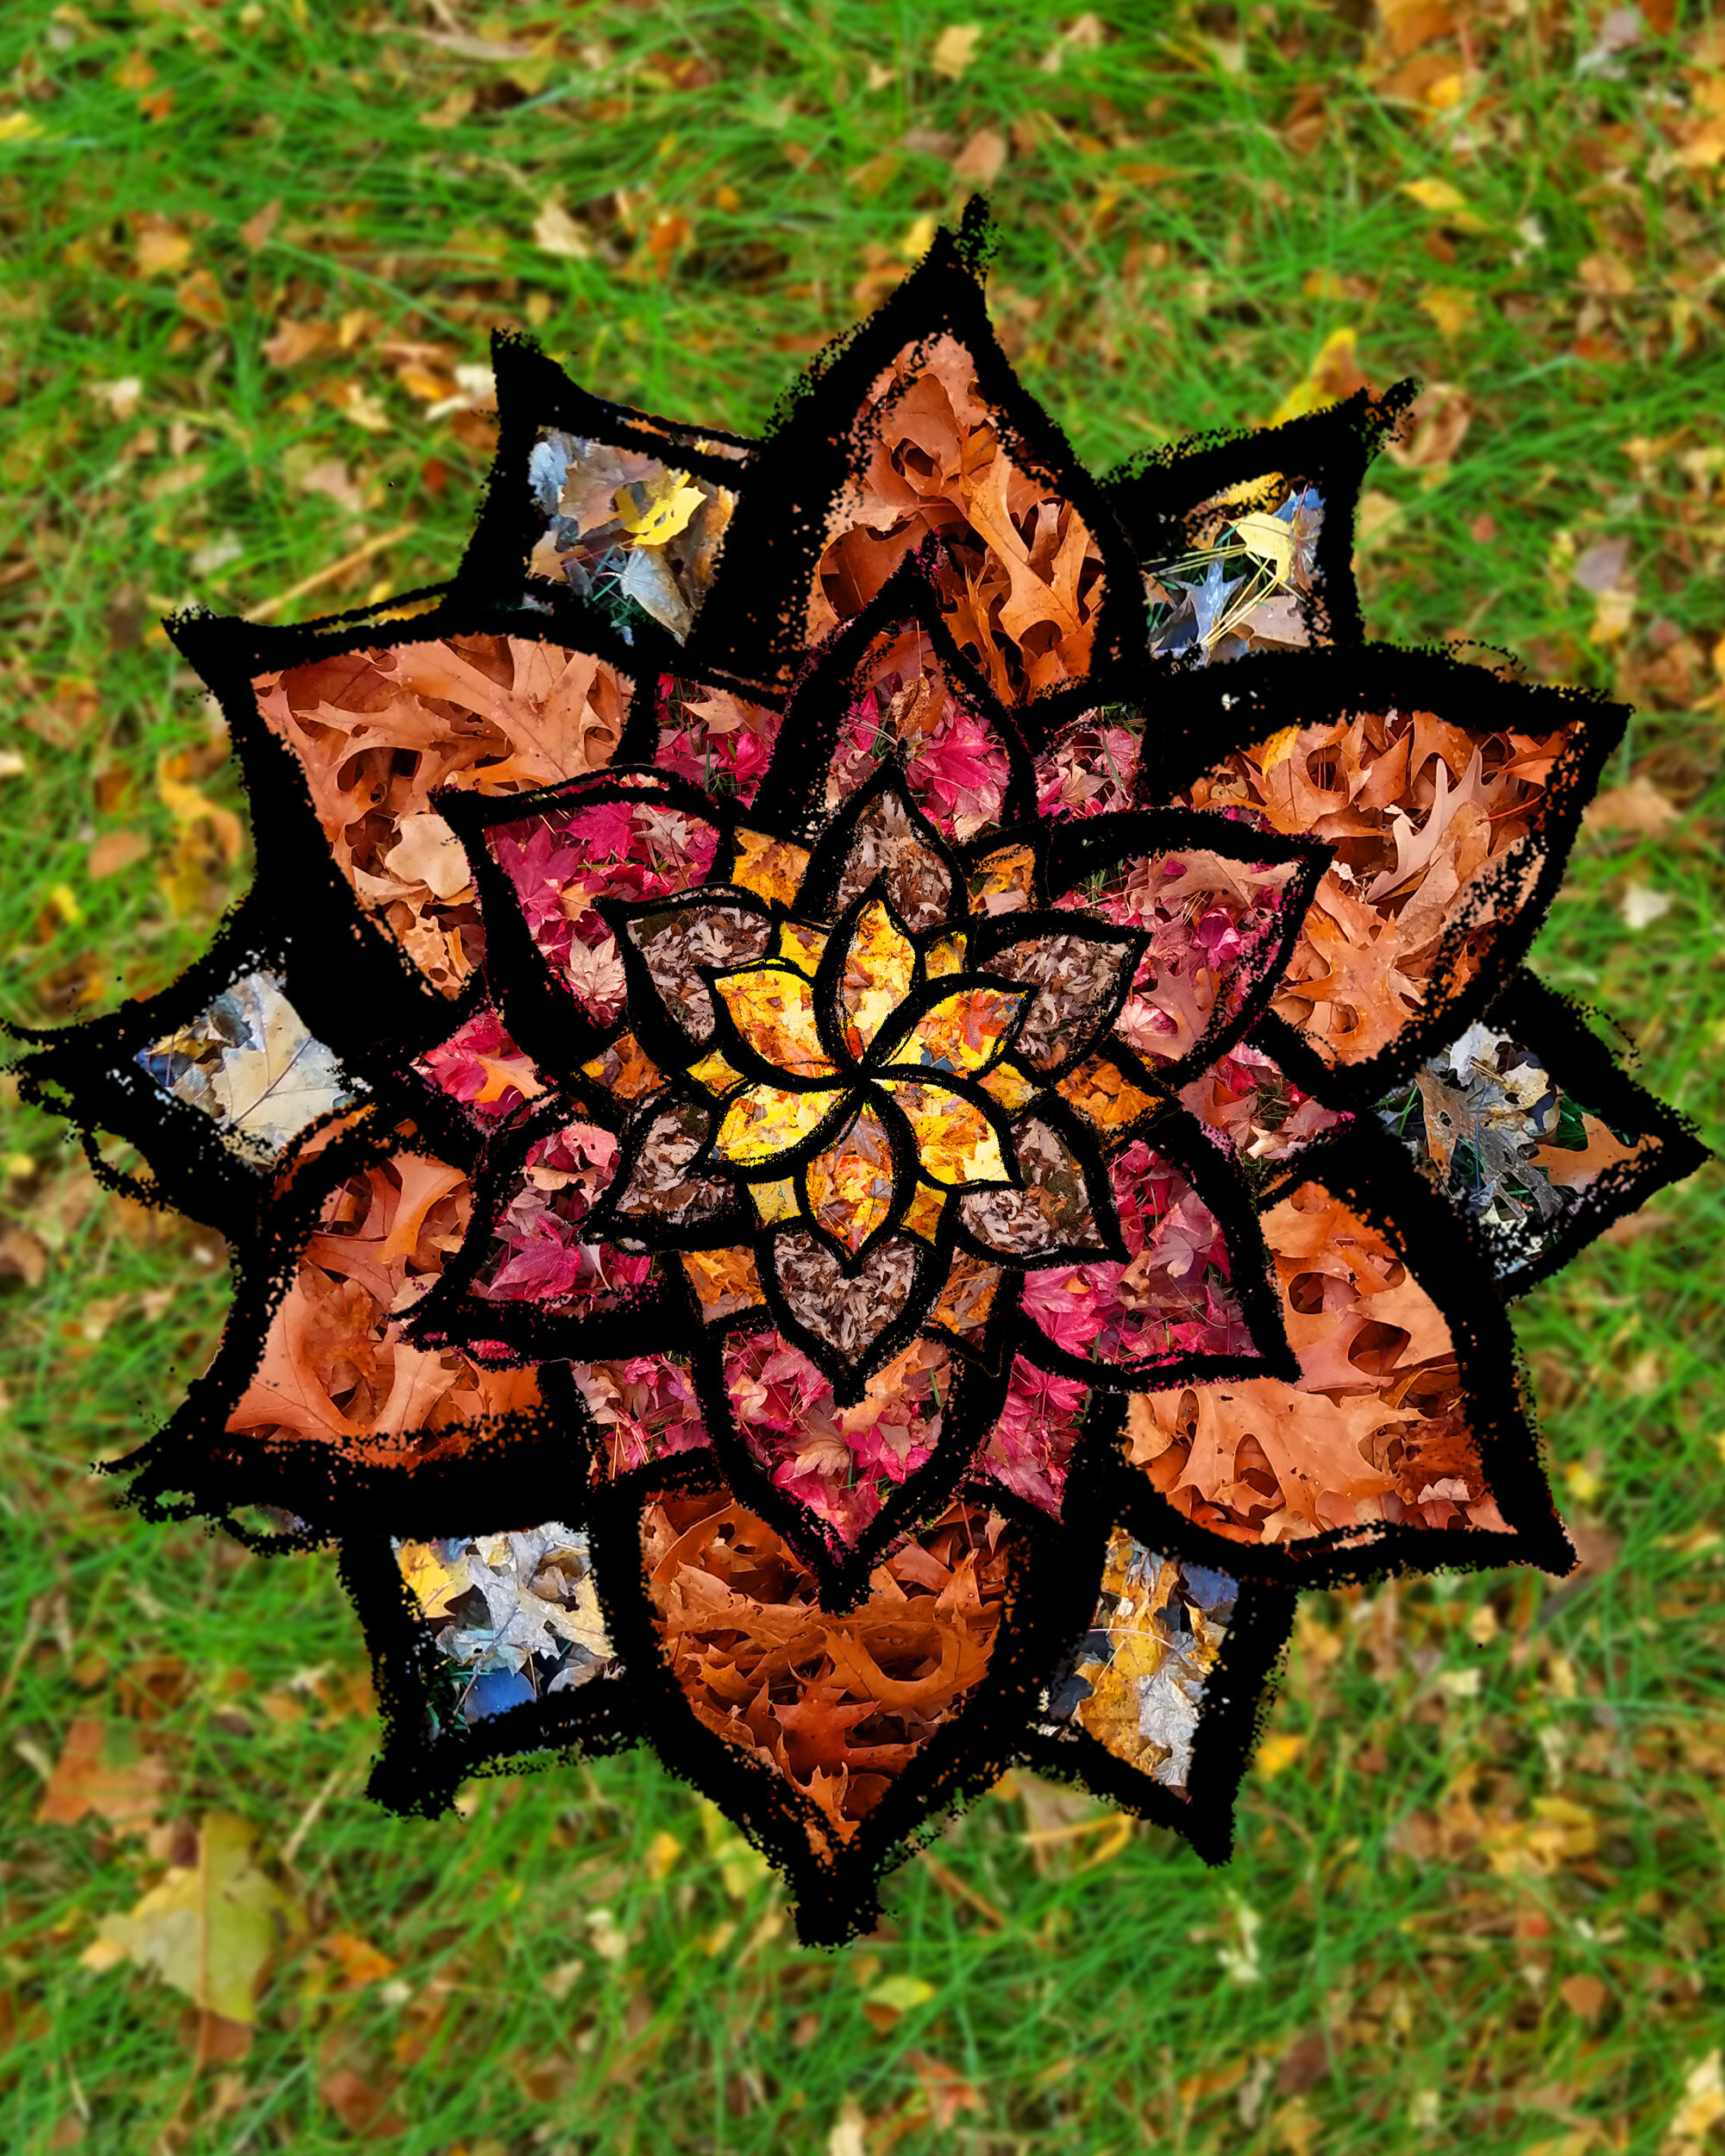 Save your Weekend - Fall is our favorite time of year! Perfect temperatures and cool nights by the outdoor fire. Fall is a precious moment in time and why waste it struggling with your mountain of wet leaves?Green Abundance offers the most efficient and speedy fall leaf clean up in town to get your lawn and gardens looking their best and ready for winter. Keep your weekends for what matters most.